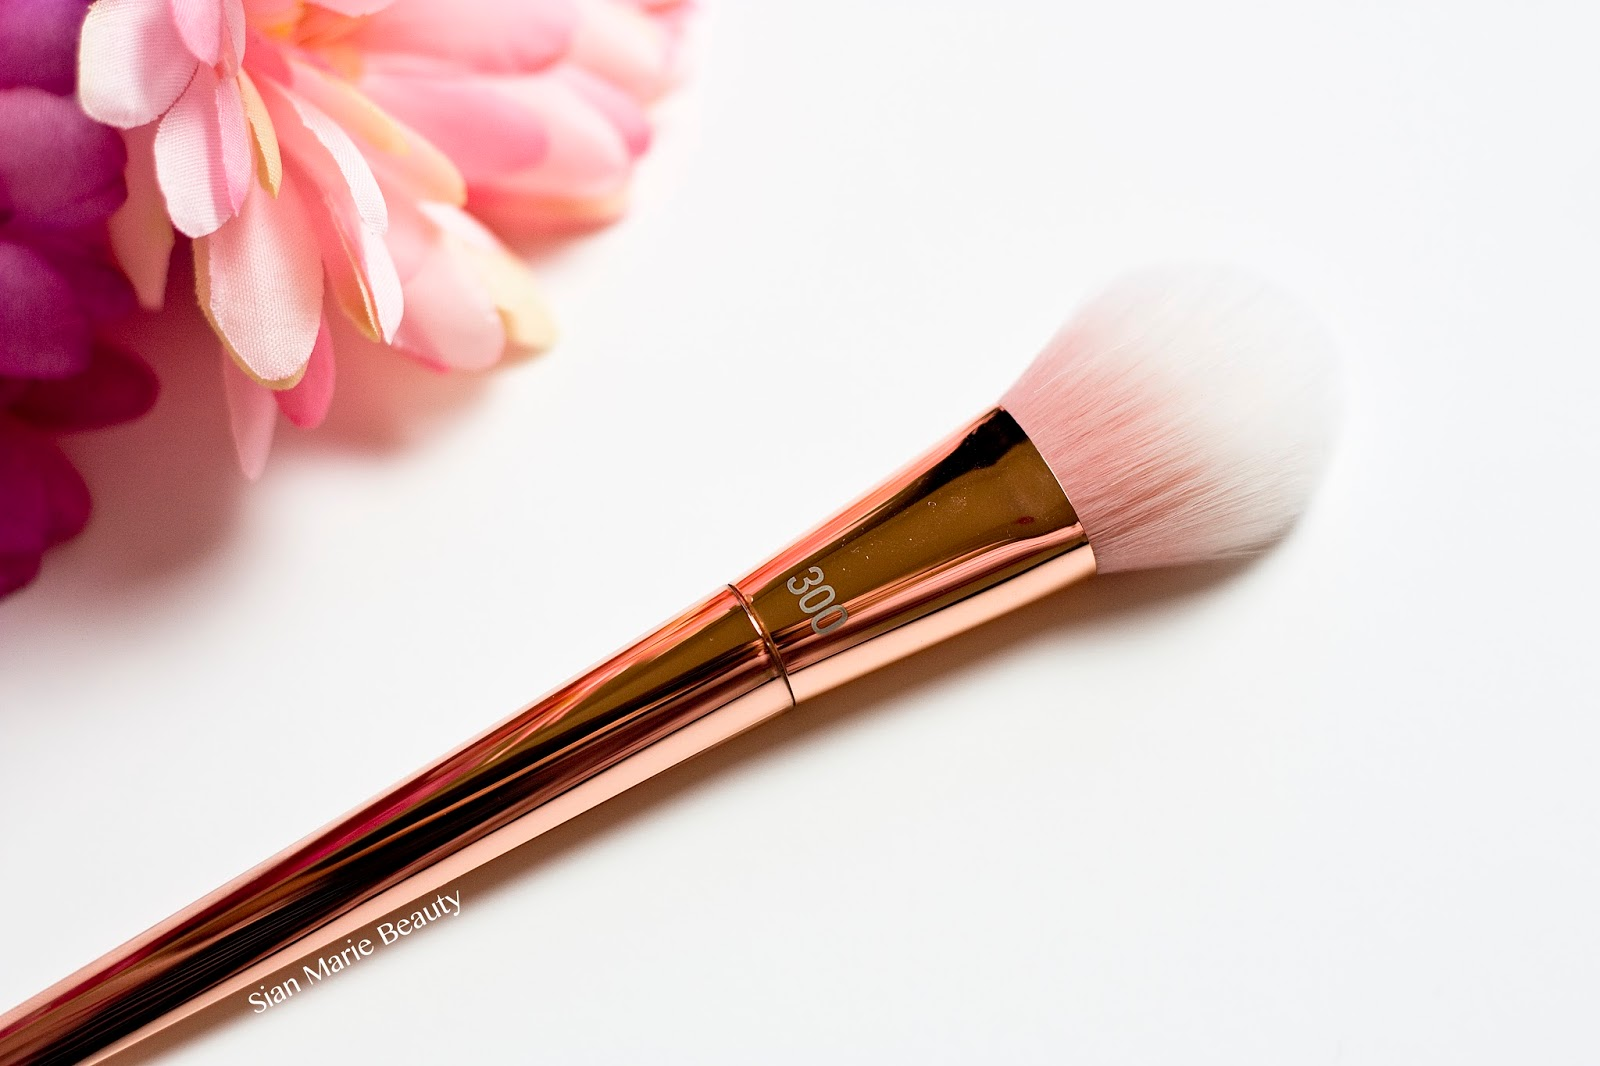 Real Techniques Bold Metals Collection 300 Tapered Blush Brush Review on Sian Marie Beauty